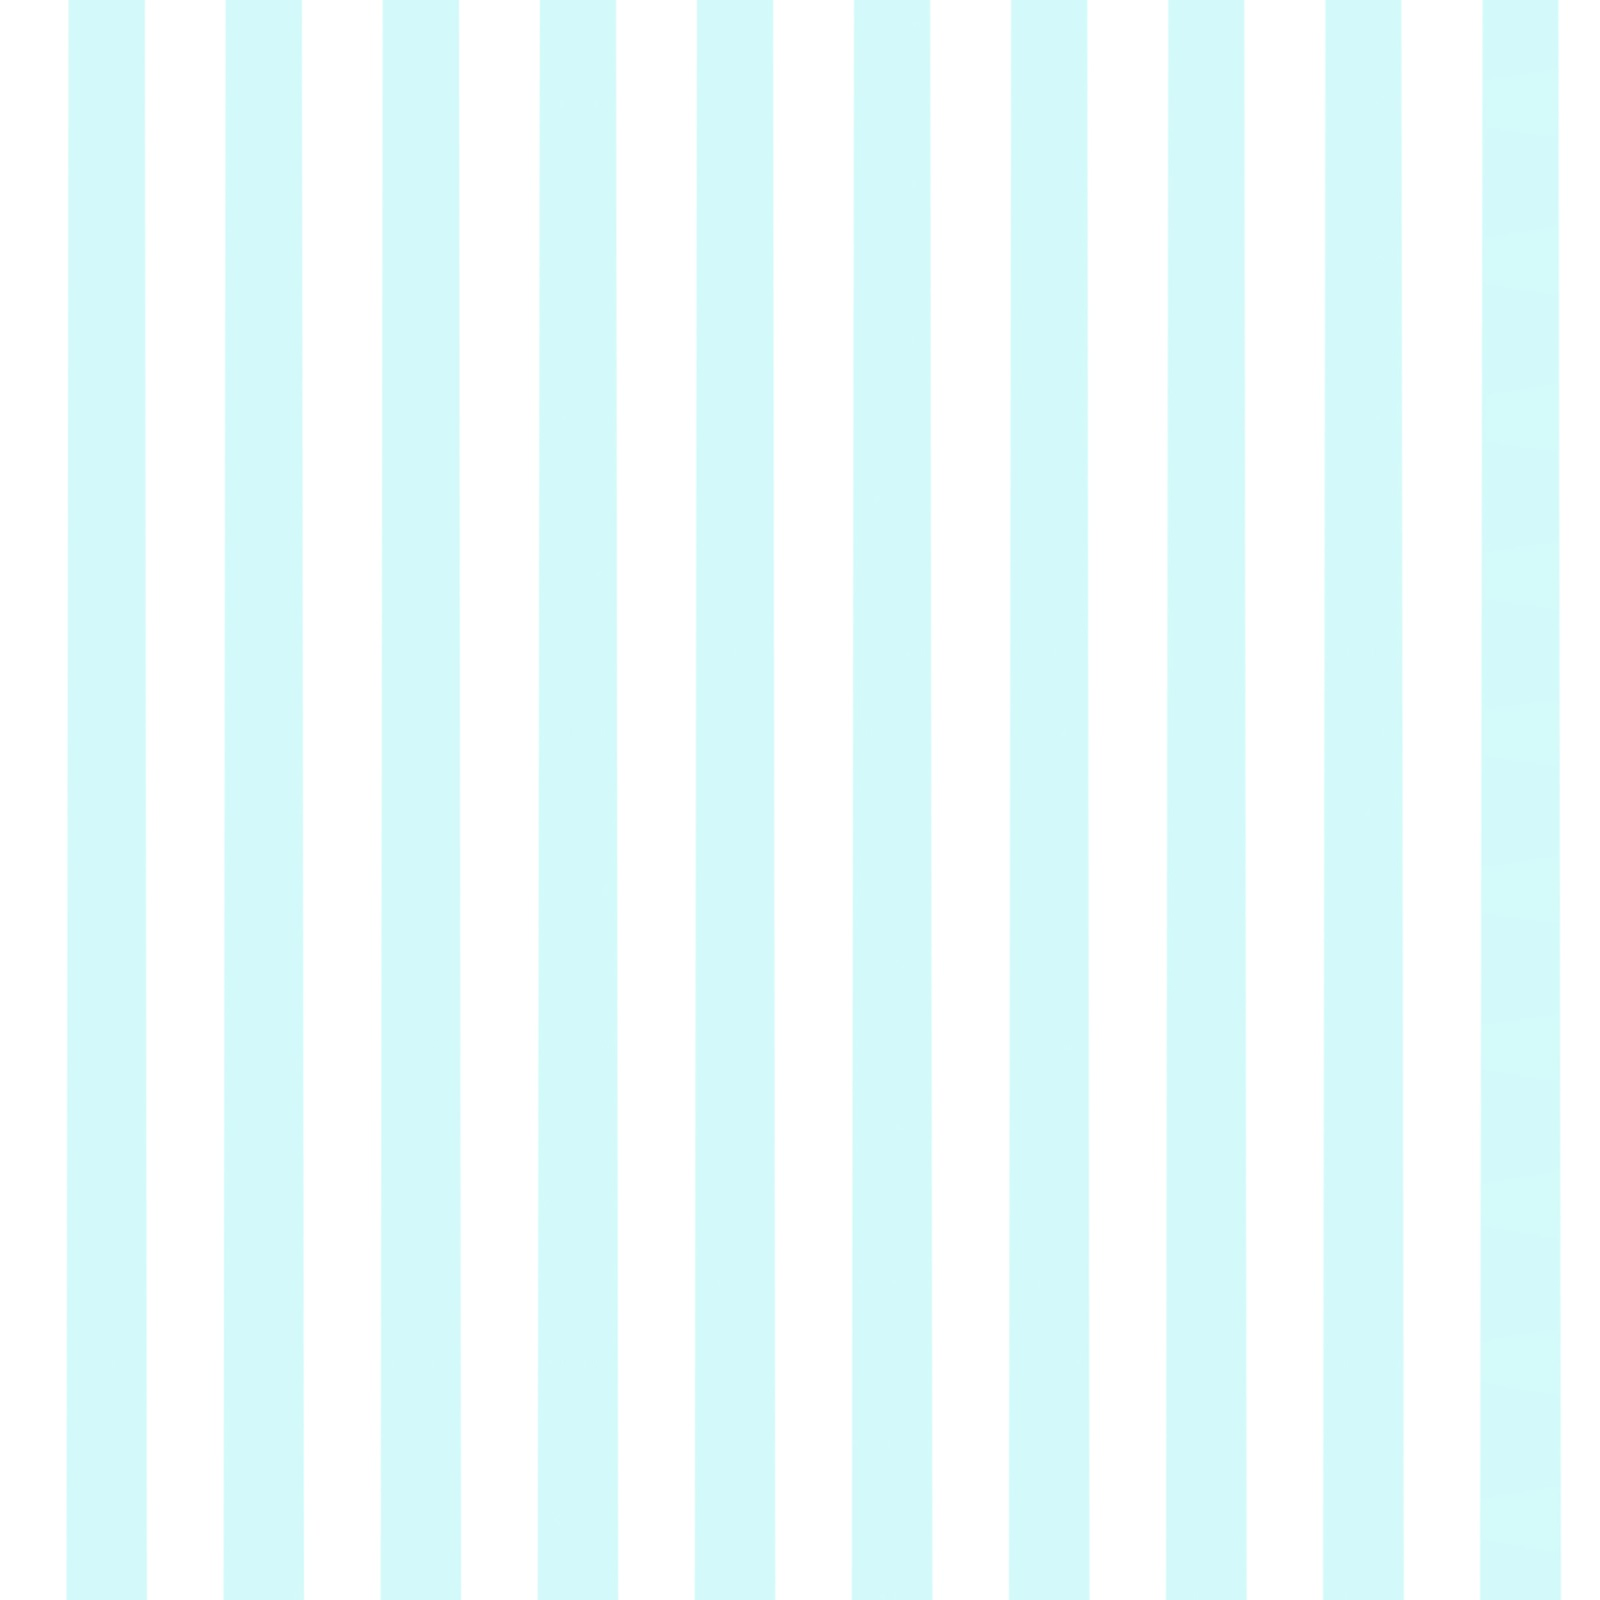 Blue Stripes Backgrounds Images PSD and Vectors Graphic